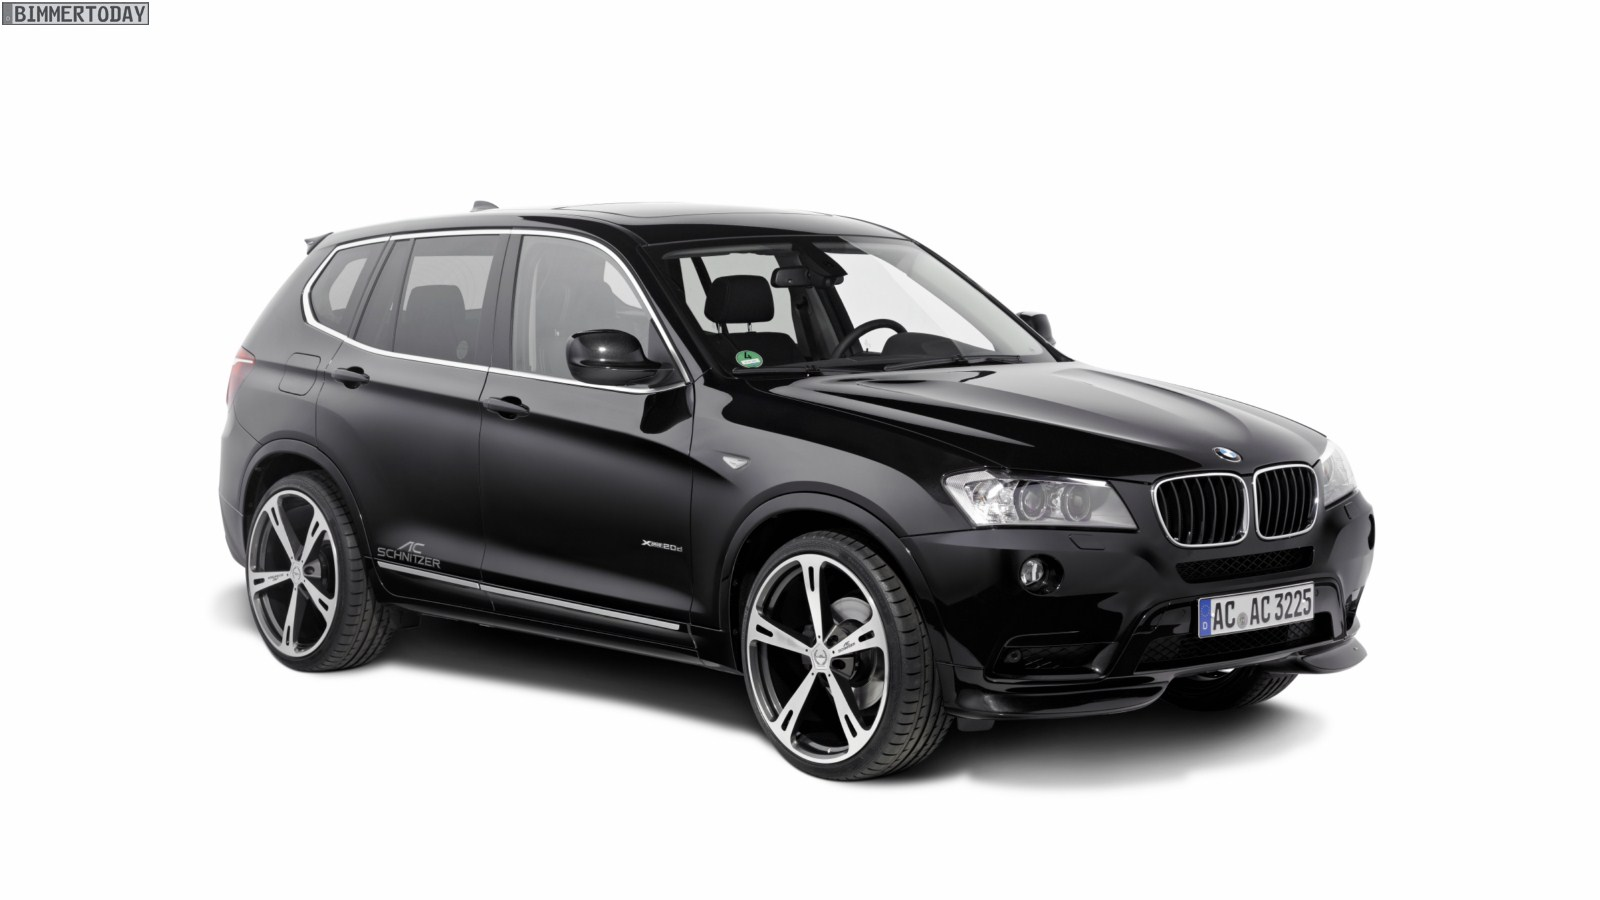 ac schnitzer trimmt den neuen bmw x3 f25 auf sport. Black Bedroom Furniture Sets. Home Design Ideas